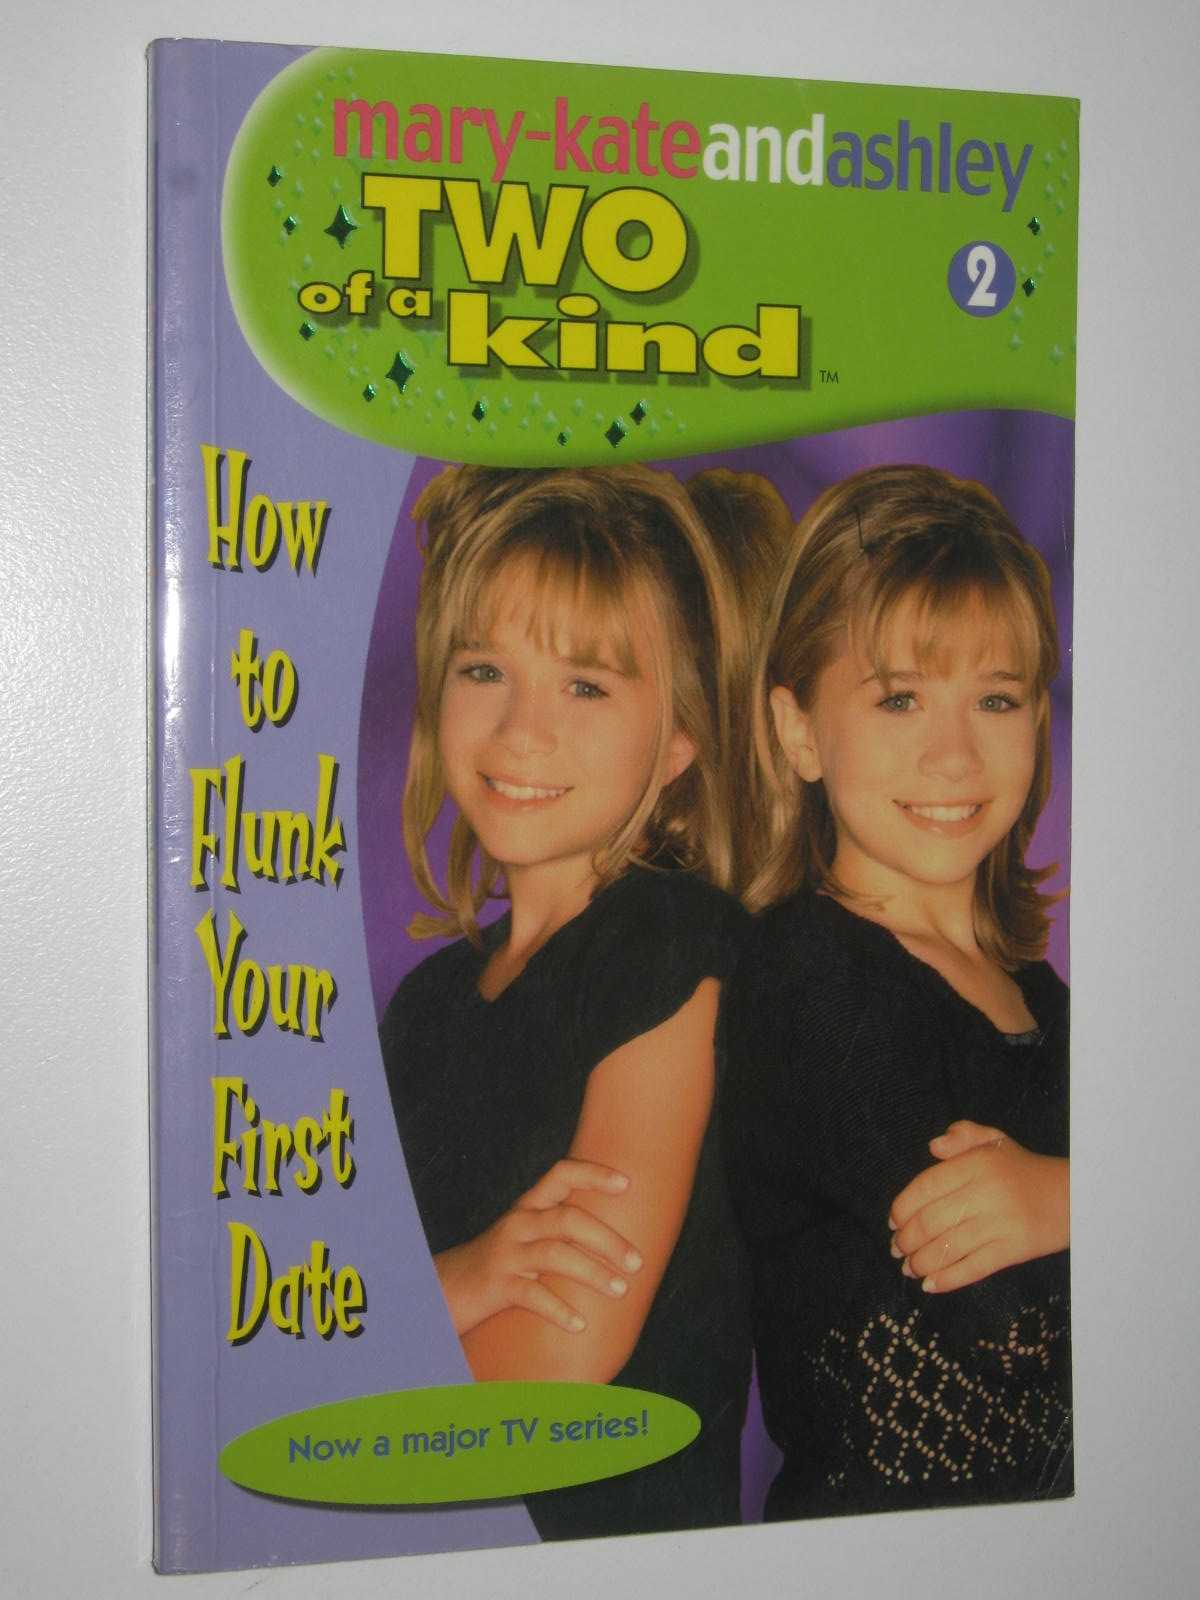 Image for How to Flunk Your First Date - Two of a Kind Series #2